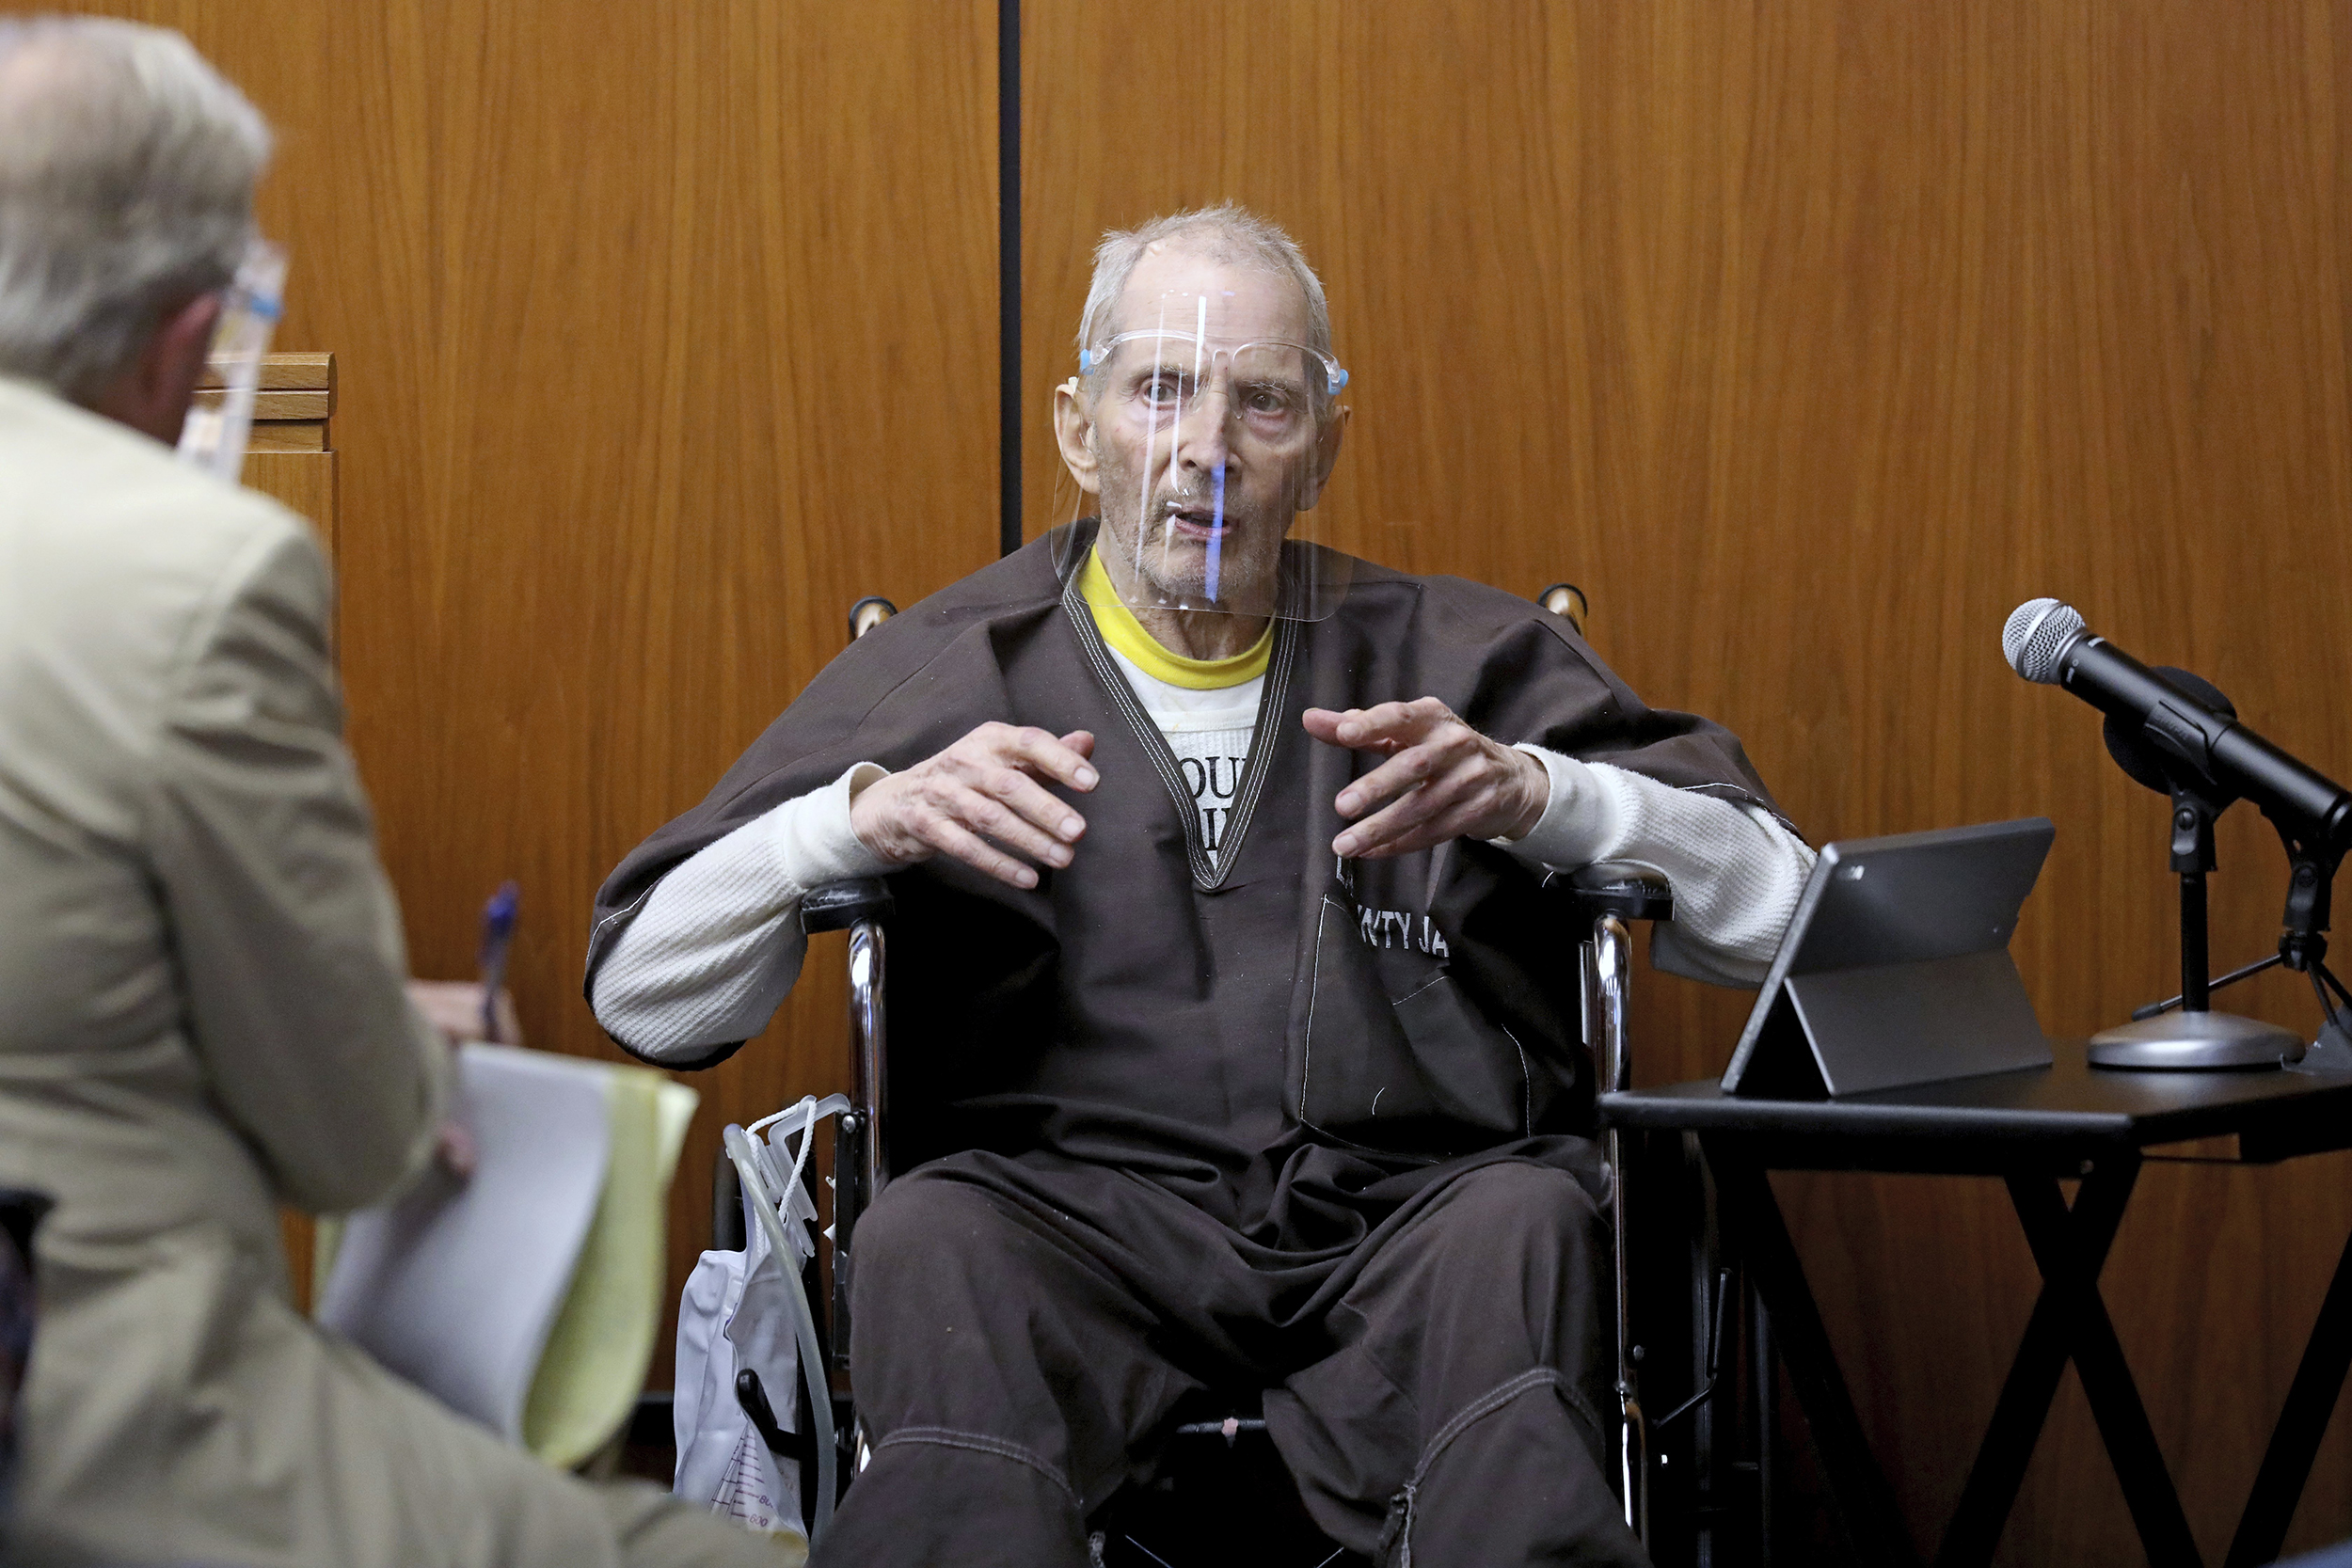 Robert Durst says he's lied under oath, but not during murder trial